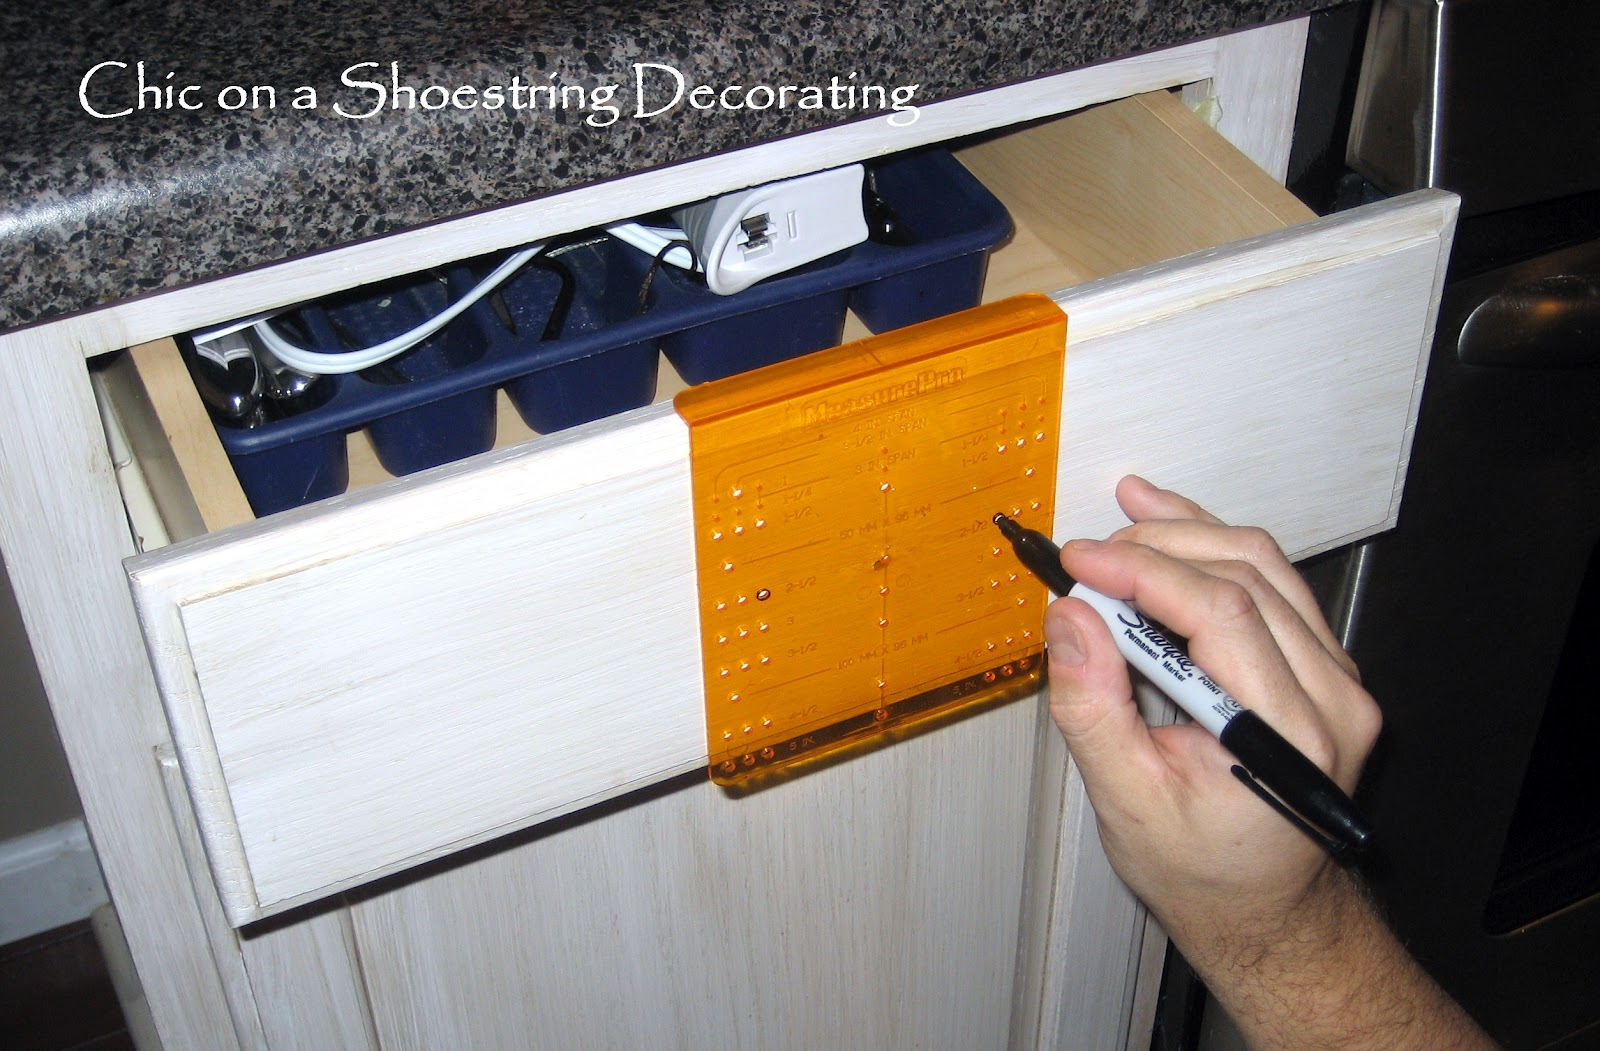 Kitchen Drawer Handles Refinishing Countertops Chic On A Shoestring Decorating How To Change Your